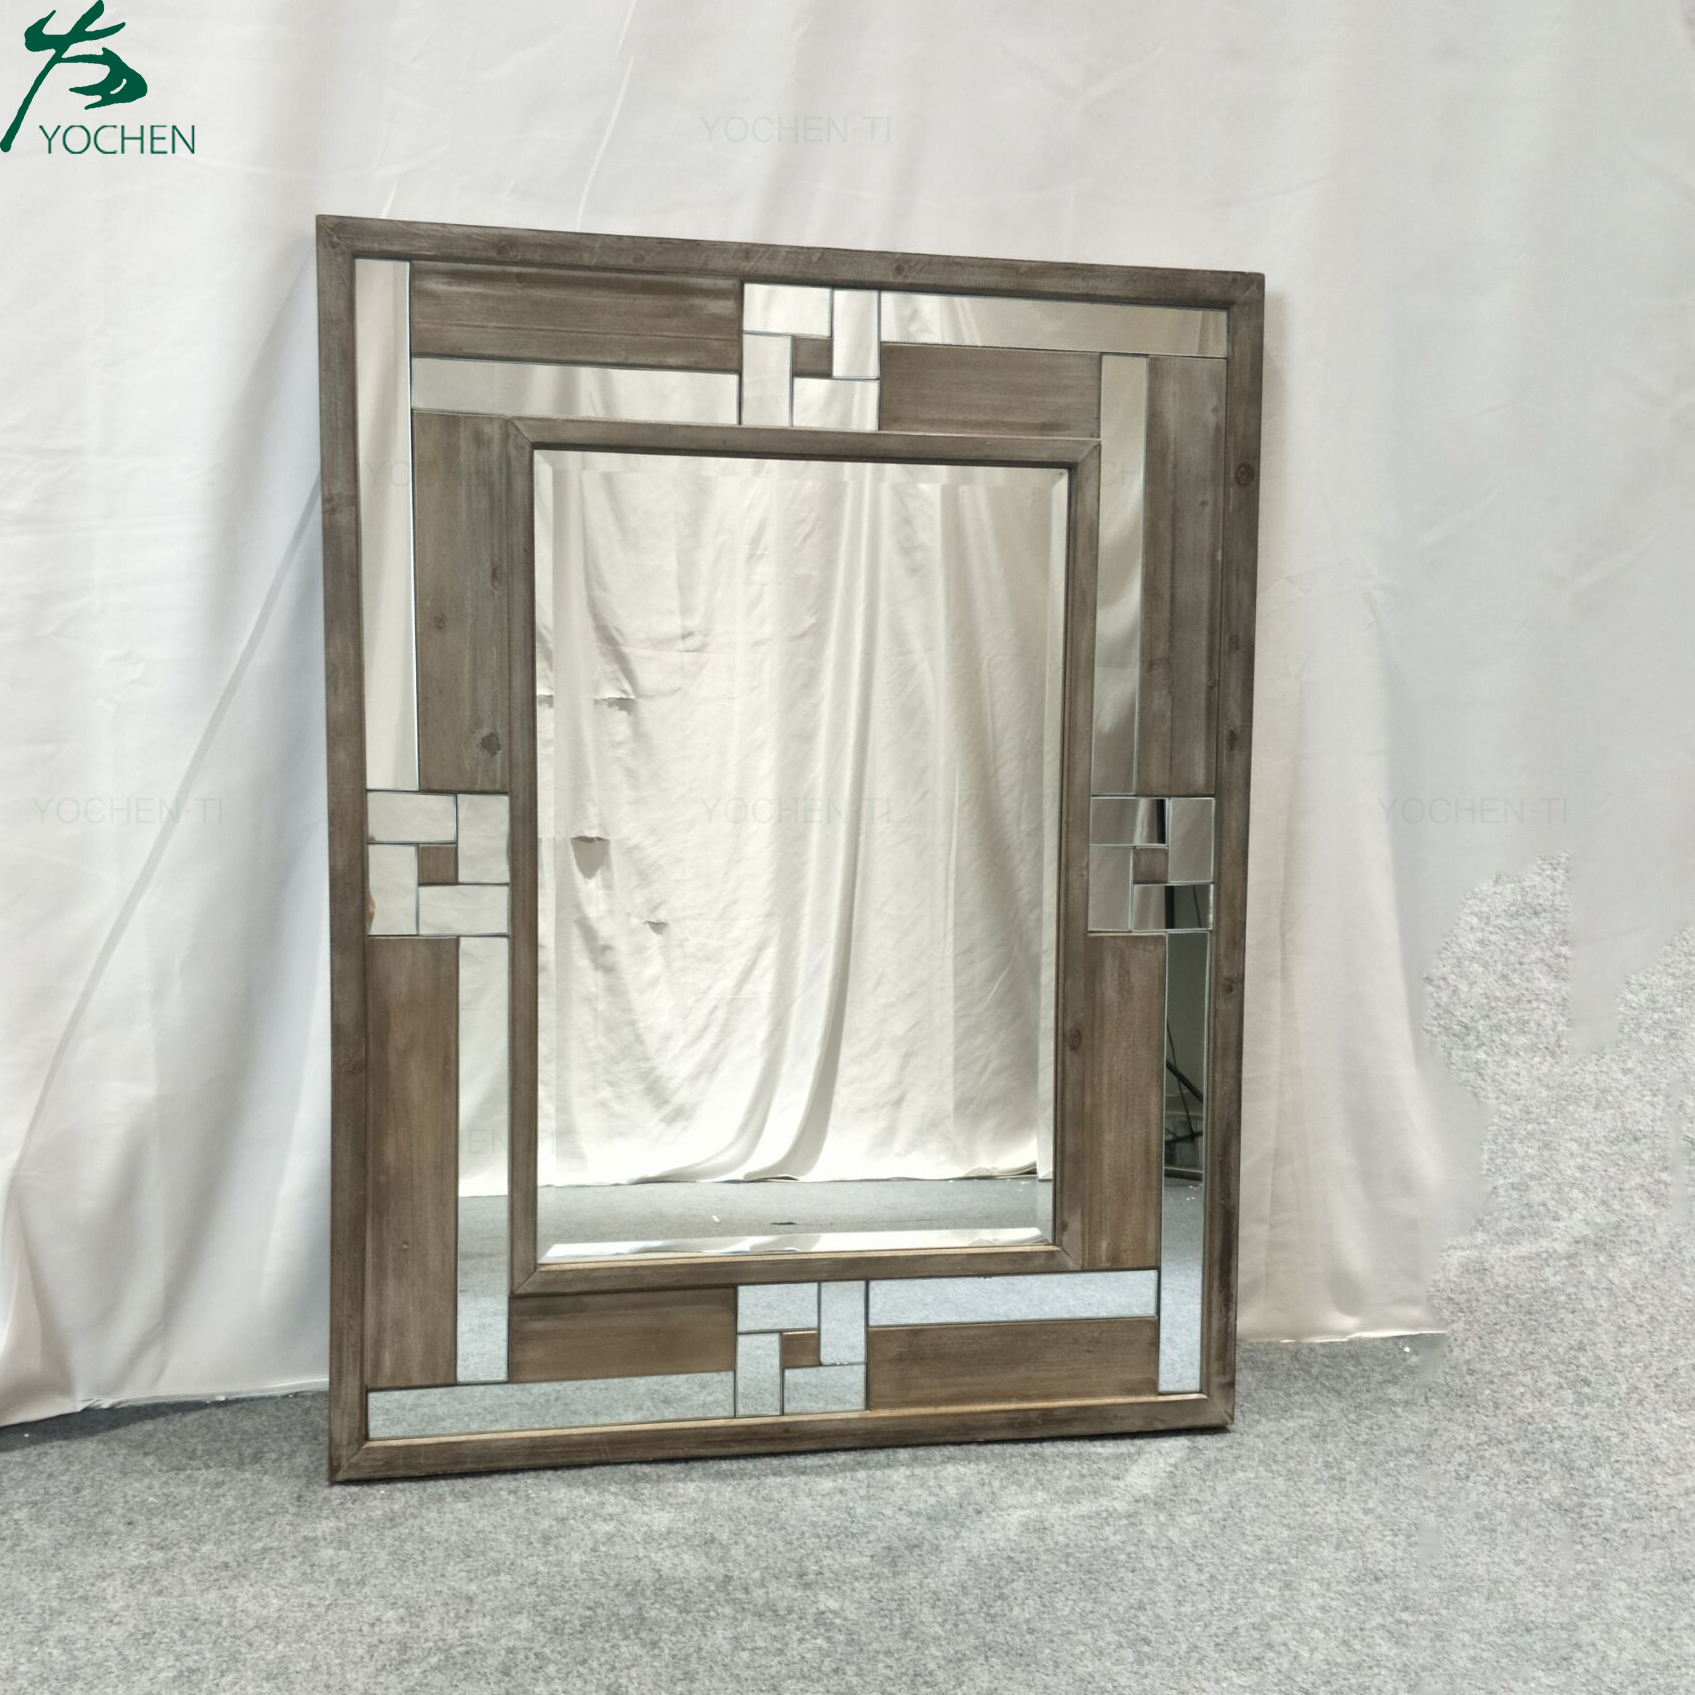 Home accessories rectangle antique wooden frame mirror